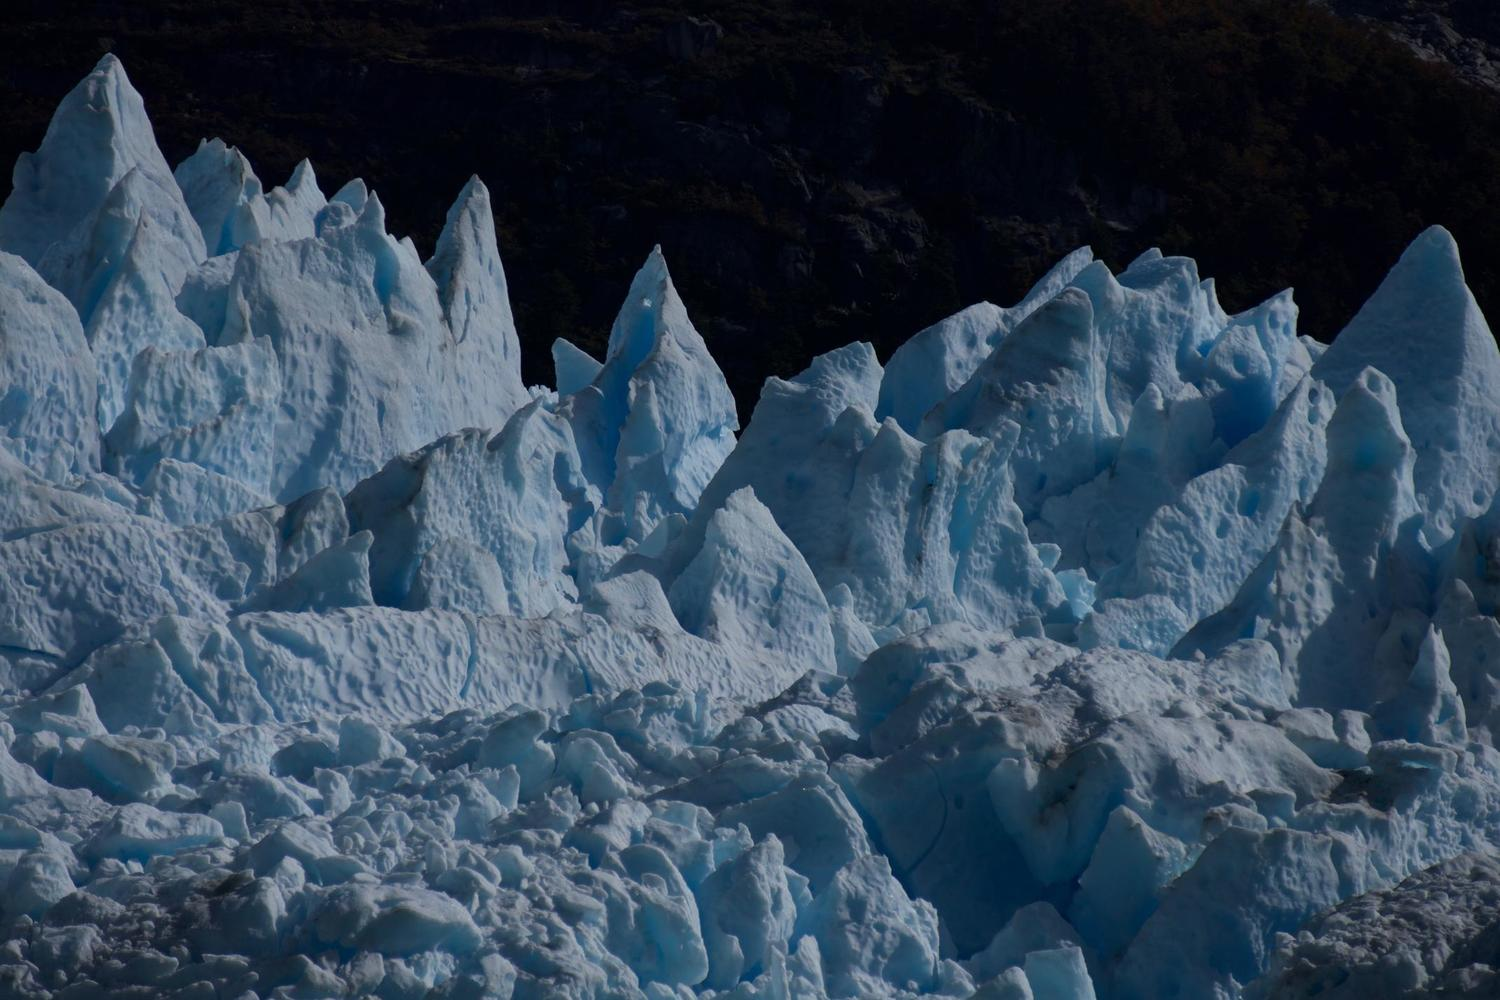 The jagged tips of the Leones Glacier in the Northern Ice Field